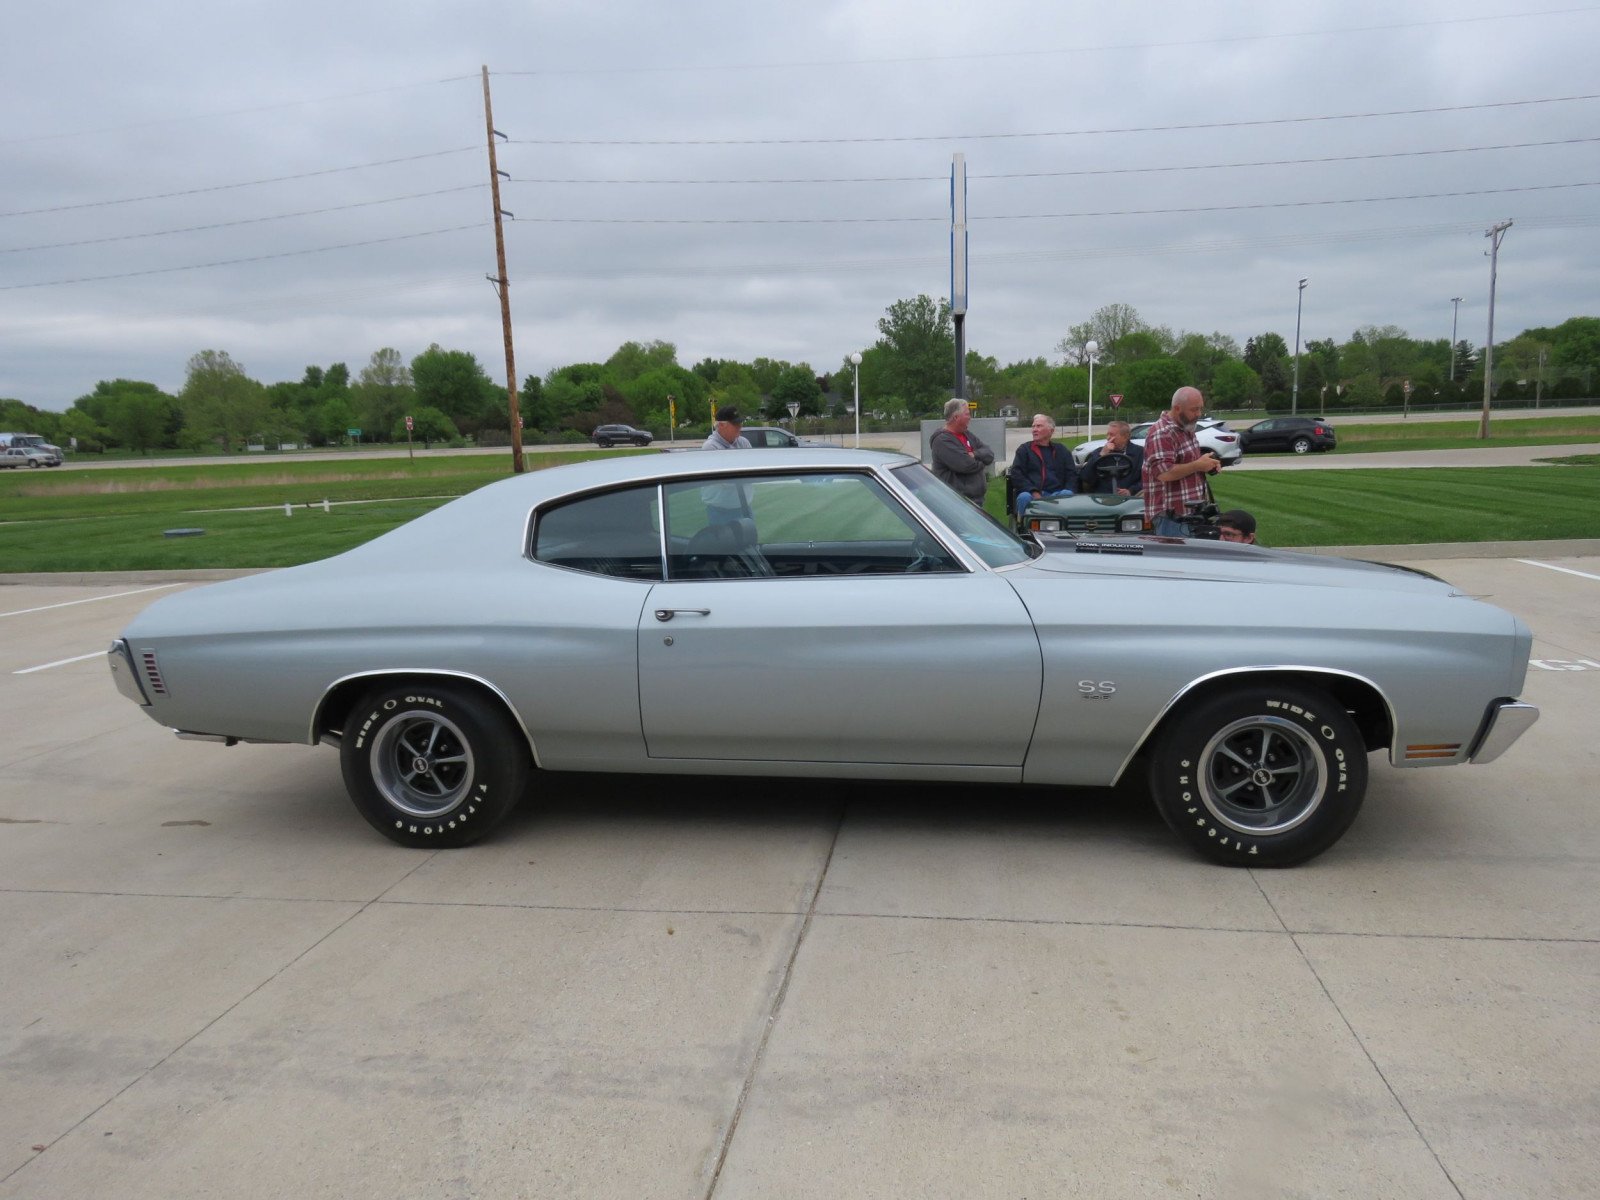 1970 Chevrolet Chevelle SS Coupe - Image 7